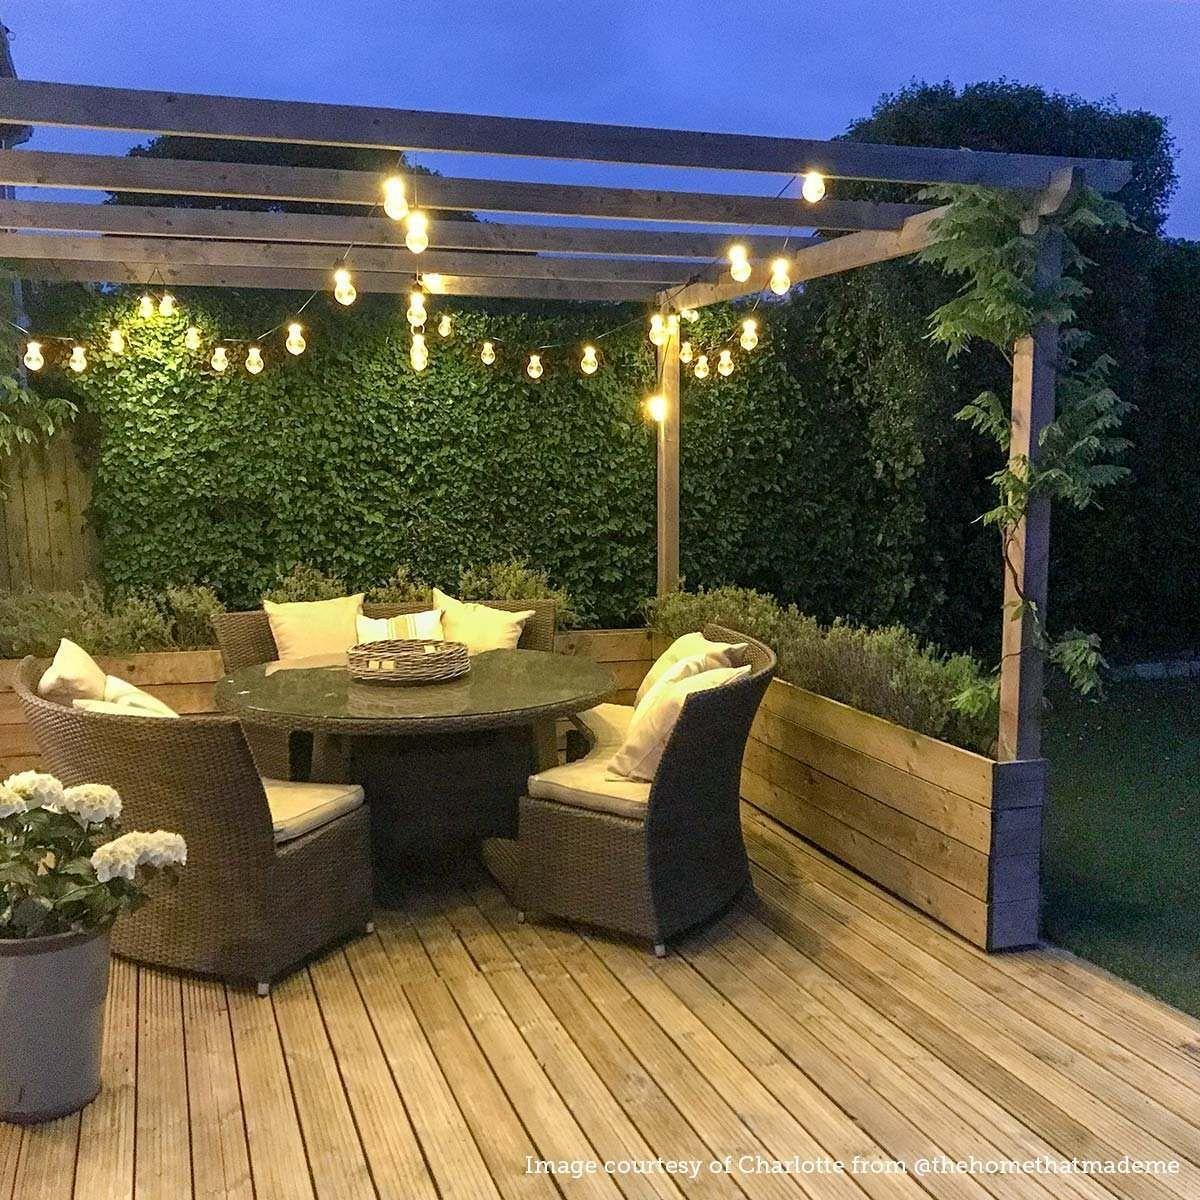 ConnectGo Large Festoon Lights, Connectable, Clear LED Bulbs is part of Outdoor gardens design, Outdoor garden lighting, Backyard patio designs, Backyard, Backyard patio, Backyard landscaping - These low voltage festoon lights are part of our cutting edge ConnectGo range, which boasts impressive versatility in its interchangeable power sources  These multipower source lights can be powered by either mains, using the latest digital 31V transformer, by battery when mains power is not available or seasonally by solar panel   These festoons feature a durable black rubber cable, with an LED spacing of 50cm, and are supplied in multiples of 5 metres; meaning if you order 45m, for example, you will receive nine 5m lengths, ready to be connected together  The lights boast warm white SMD LEDs and as part of our ConnectGo connectable lights system, you can continue to add more connectable lights to your chosen power source   The preferred choice for both indoor and prolonged outdoor displays, our superior quality LED lights have unlimited uses and come with our market leading 2 year antirust guarantee  Ideal places to use these lights are on trees, shrubs, gutters, eaves, fencing and decking  They're great for use all year round at parties and are perfect at weddings too   Each connectable length arrives separately, ready to be connected together  All products within this system feature our professionally moulded connections, designed with shaped wings for a reassuringly strong connection when adding products together  The specific power source required depends on your preferred usage and the number of lights being used  Below is a breakdown of the number of light sets that can be powered by each source Small 31V transformer   2 sets Medium 31V transformer   11 sets Large 31V transformer   20 sets (5 sets from each port) AA battery box   1 set D battery box   2 sets Solar panel   1 set Using a small, medium or large transformer, these lights boast 8 different functions, including Combination, In Waves, Sequential, SlowGlow, Flash, Slow Fade, Twinkling, and Steady On  Each time you switch the lights on, the inbuilt memory chip will automatically select the last function used   The small transformer also comes with a handy timer function, which allows you to leave the lights switched on; they will remain illuminated for 6 hours, before turning off for 18 hours and then turning back on at the same time as the previous day  These lights boast 8 different functions, including Combination, In Waves, Sequential, SlowGlow, Flash, Slow Fade, Twinkling, and Steady On  Each time you switch the lights on, the inbuilt memory chip will automatically select the last function used  If using either of the battery pack options, you can choose between Steady On, Twinkle, Steady On with Timer, or Twinkle with Timer  If using the solar panel as your power source, you can choose between Steady On and Twinkle functions  There are a variety of accessories compatible with these festoon lights, such as extension cables and Y cord connectors to aid installation  Look out for the ConnectGo overlay  every item with this logo can be connected to these lights  Installation guidance Please note the festoon belts must always be supported using a catenary wire cable